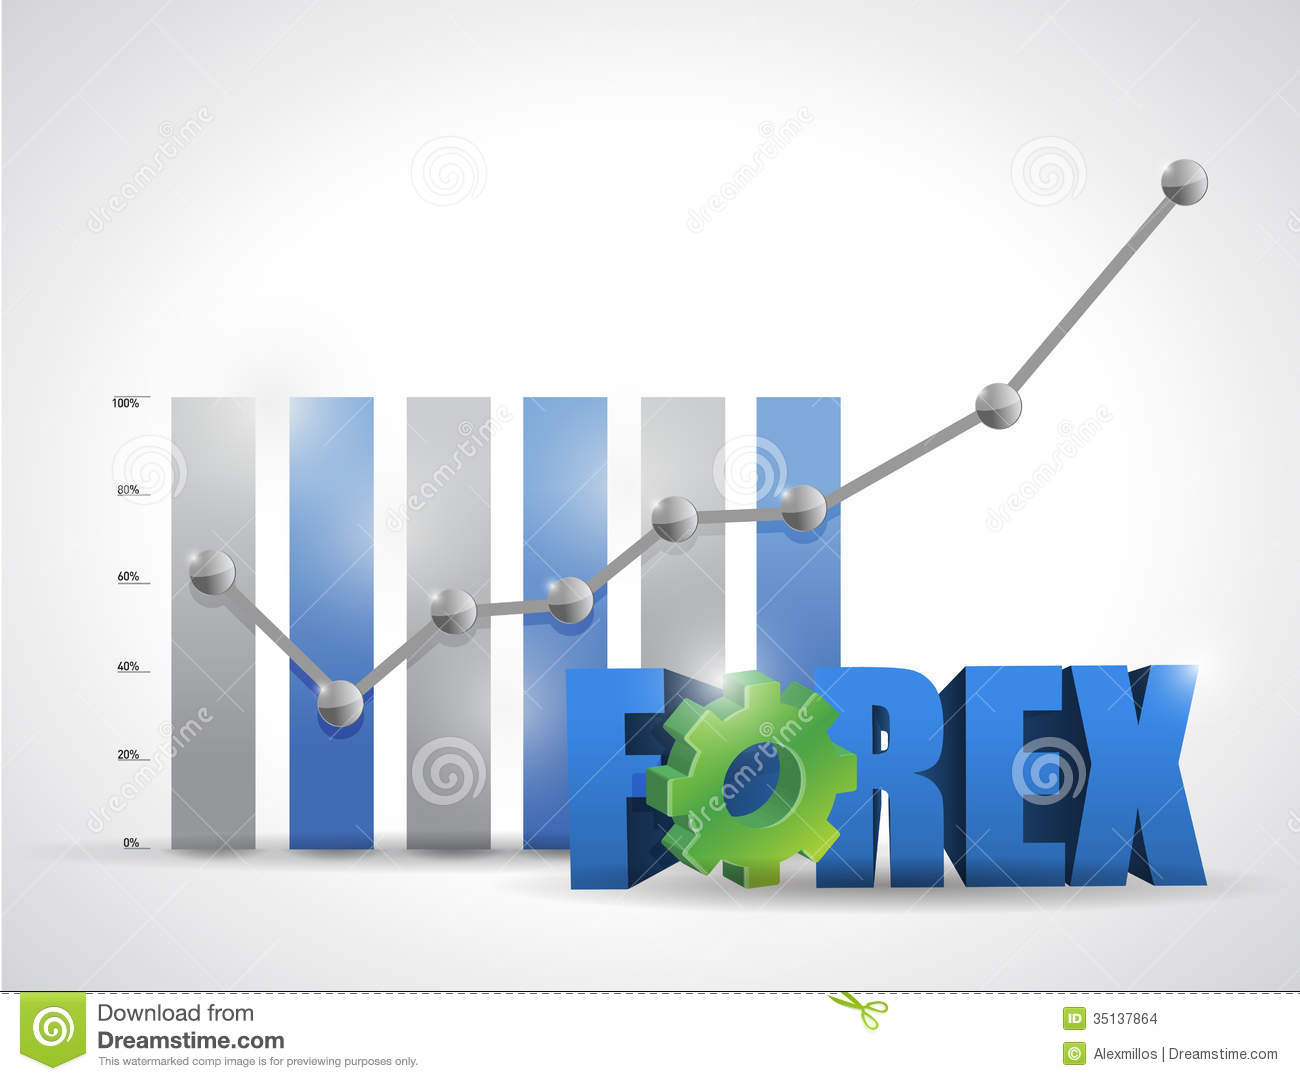 About forex business